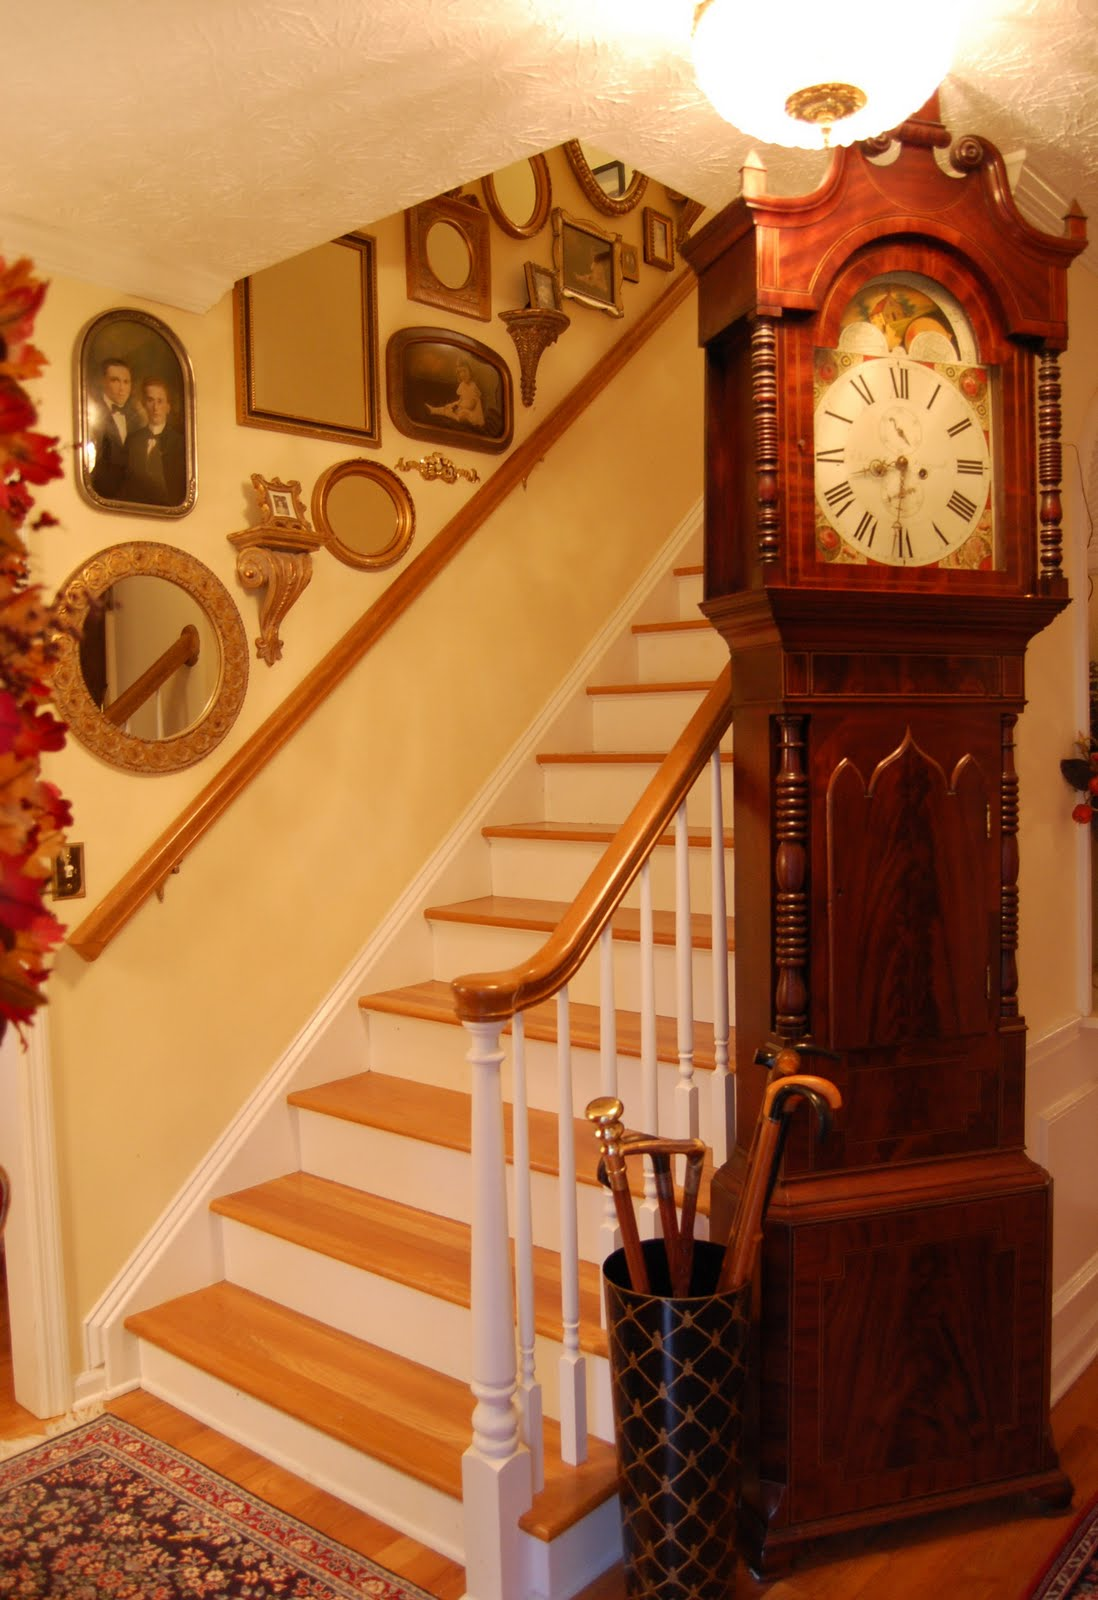 Decorate Staircases With Vintage Photos Mirrors And Small